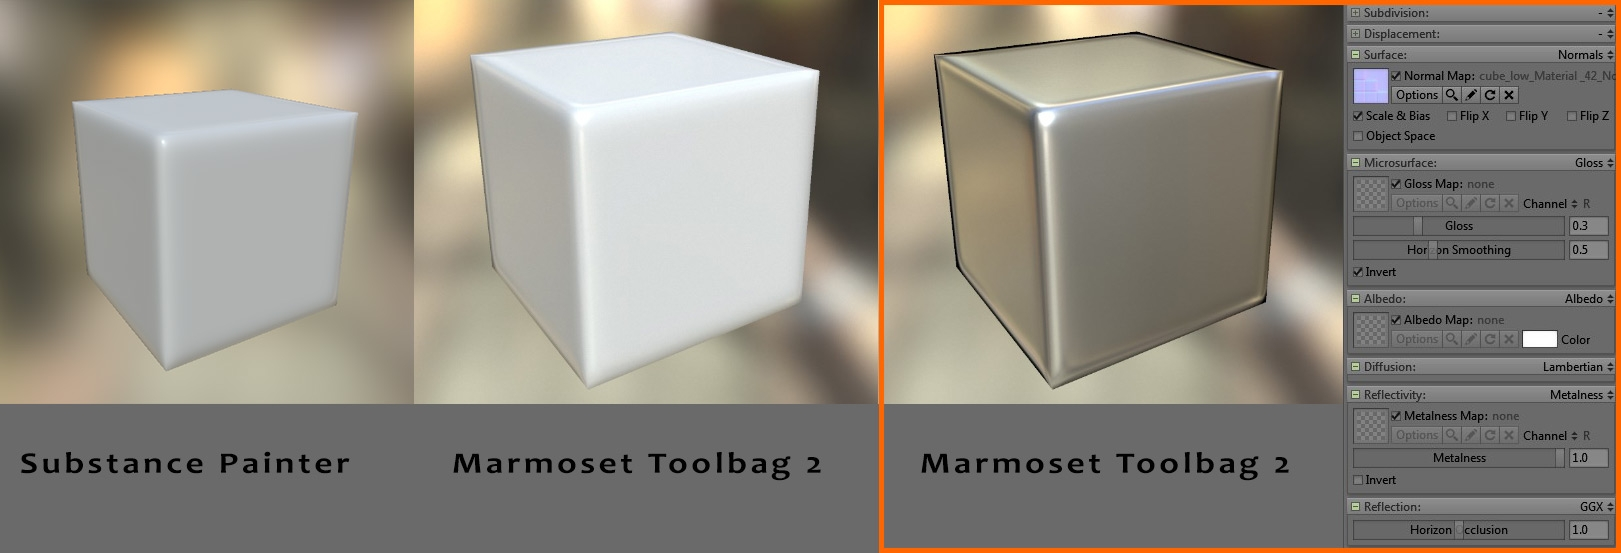 3ds Max - Substance Painter - Marmoset Toolbag normal map on metal